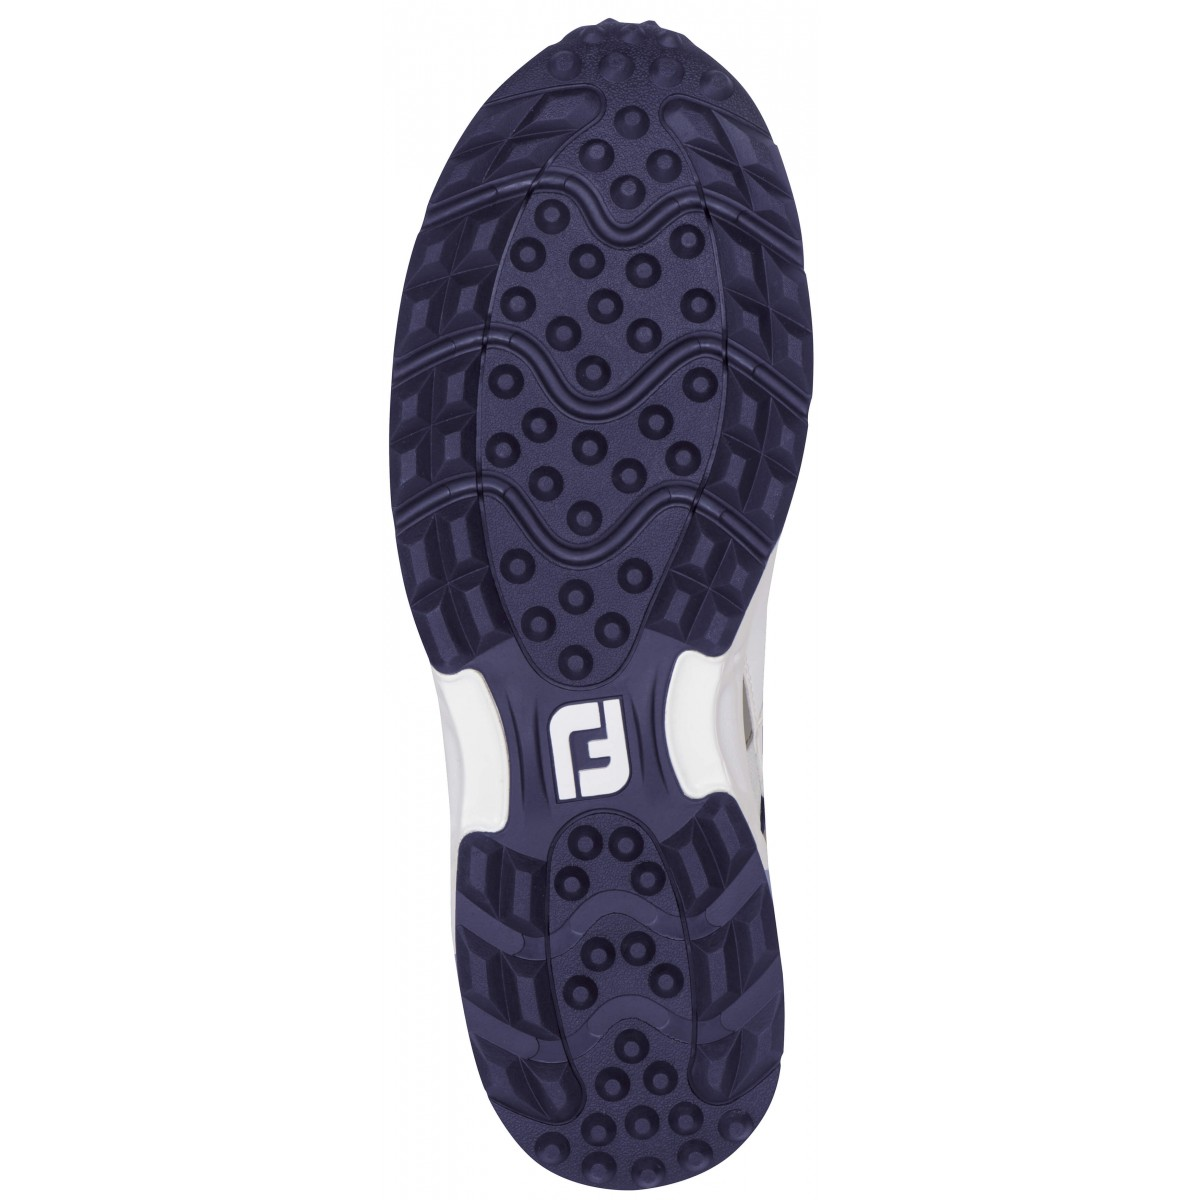 FootJoy Athletic Golf Specialty Shoe - Discontinued Style 56735